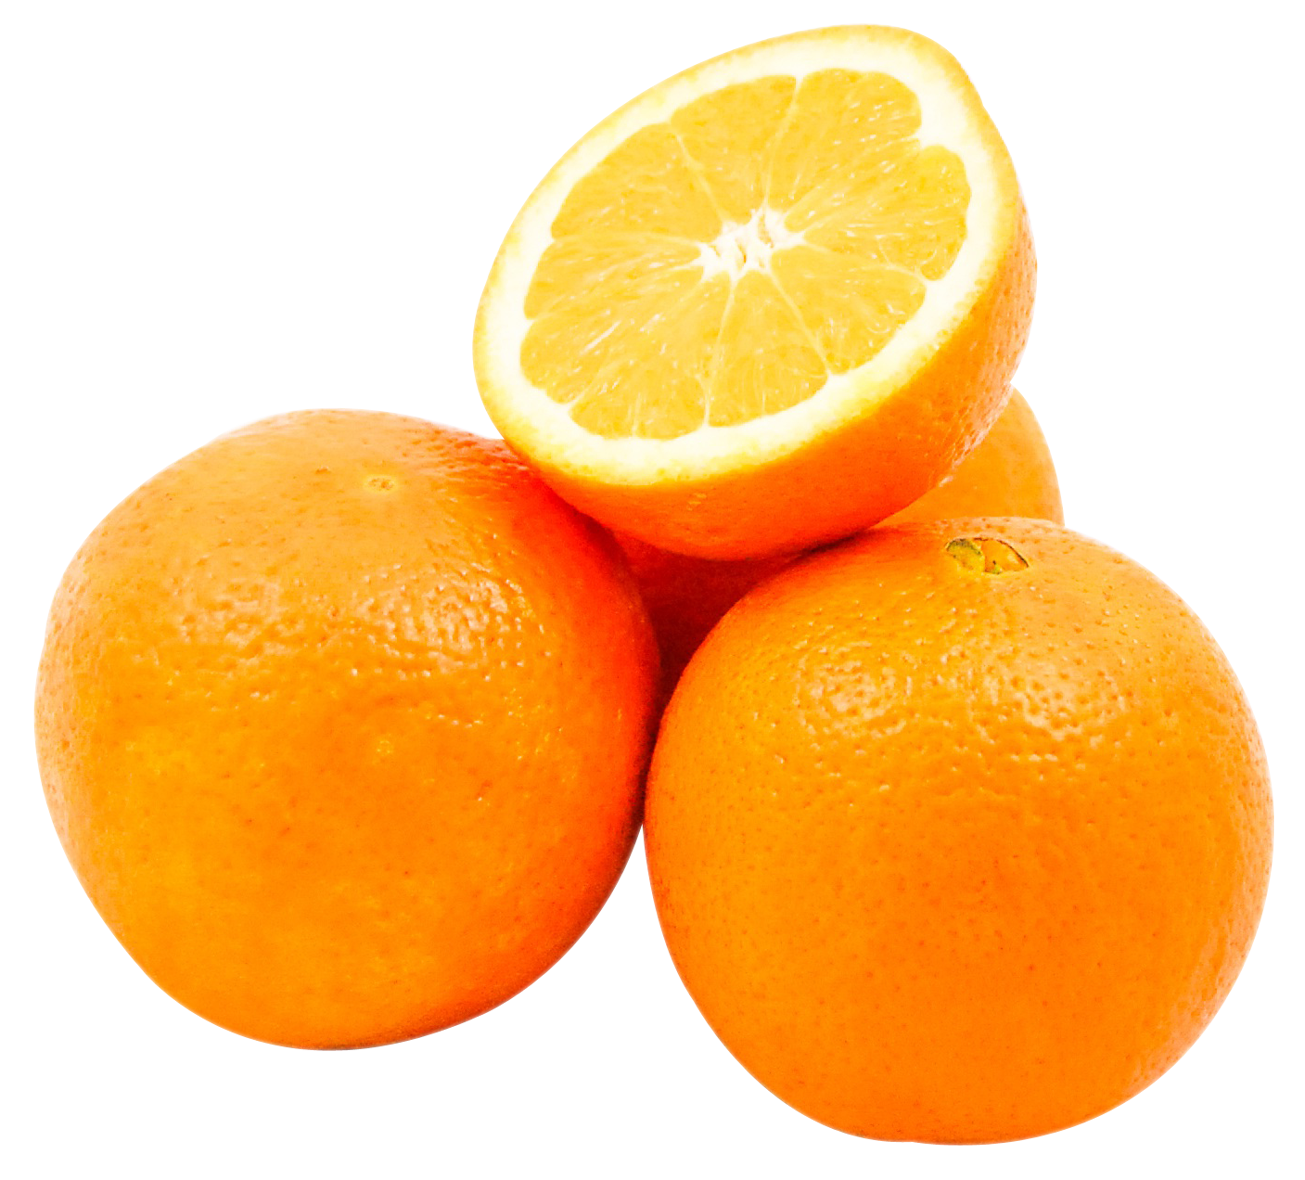 ripe orange png image pngpix #15305